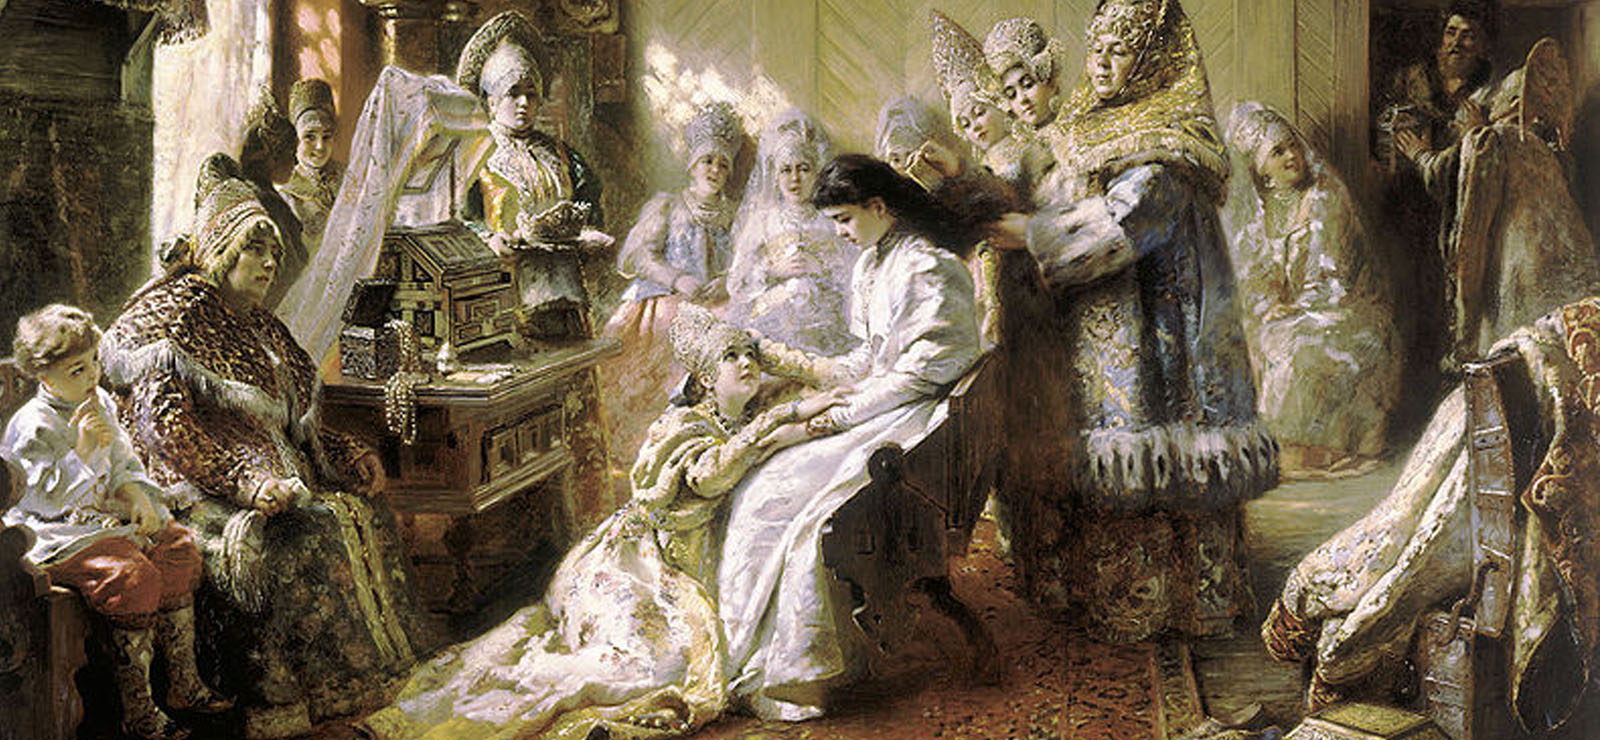 [Program TwelveThe Tsar's Bride] The Russian Bride (1884) by Konstantin Makovsky